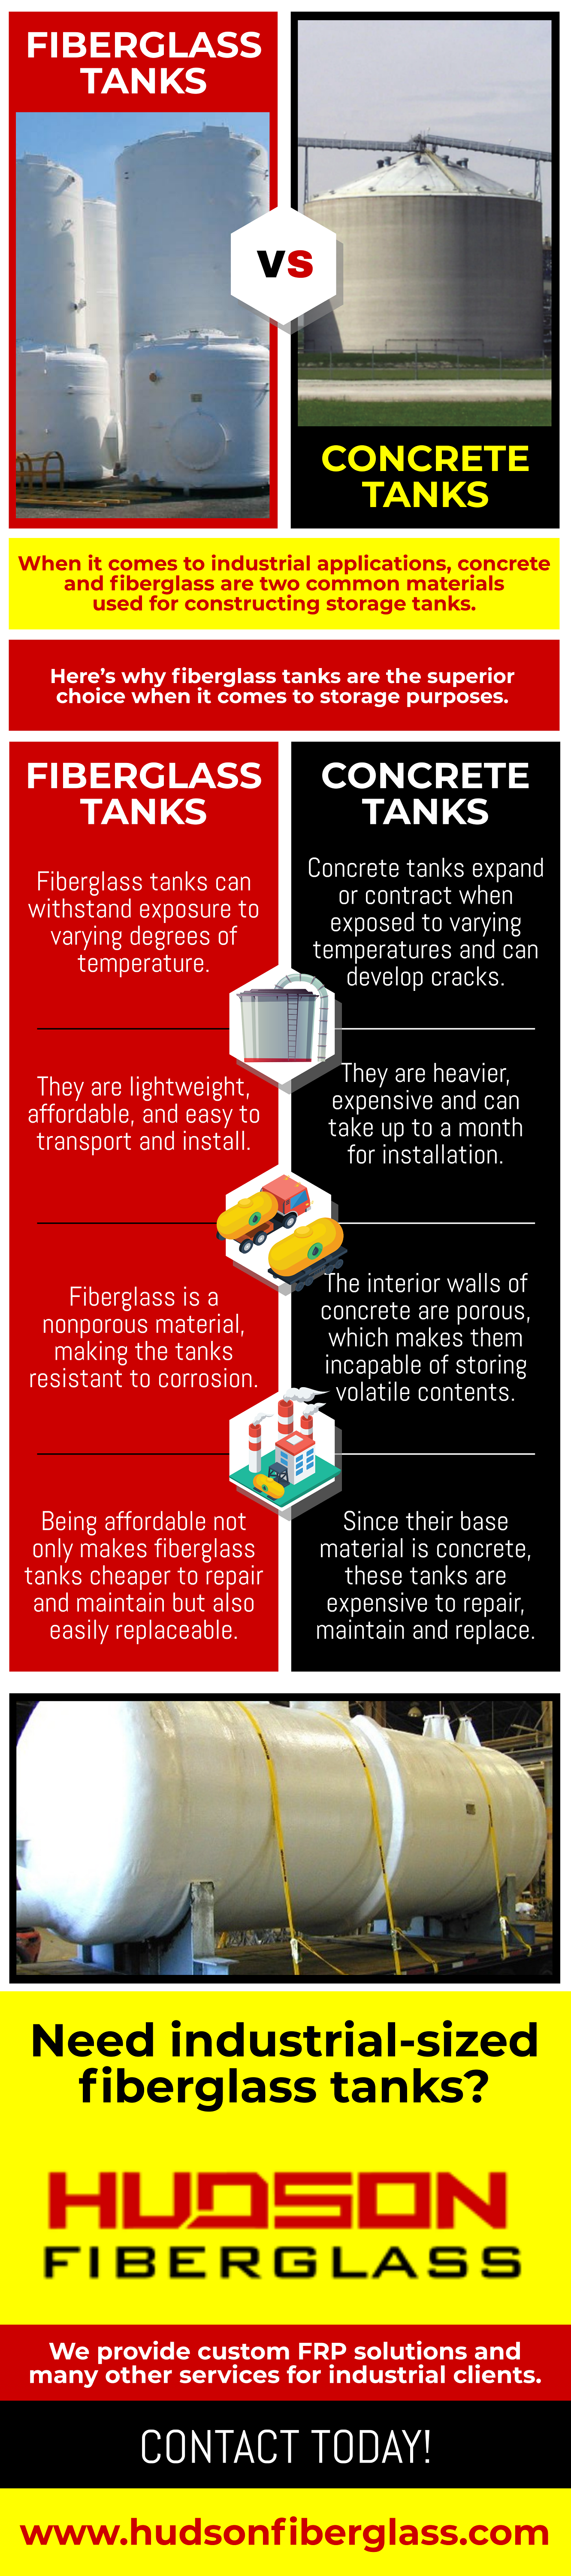 Fiberglass Tanks VS Concrete Tanks